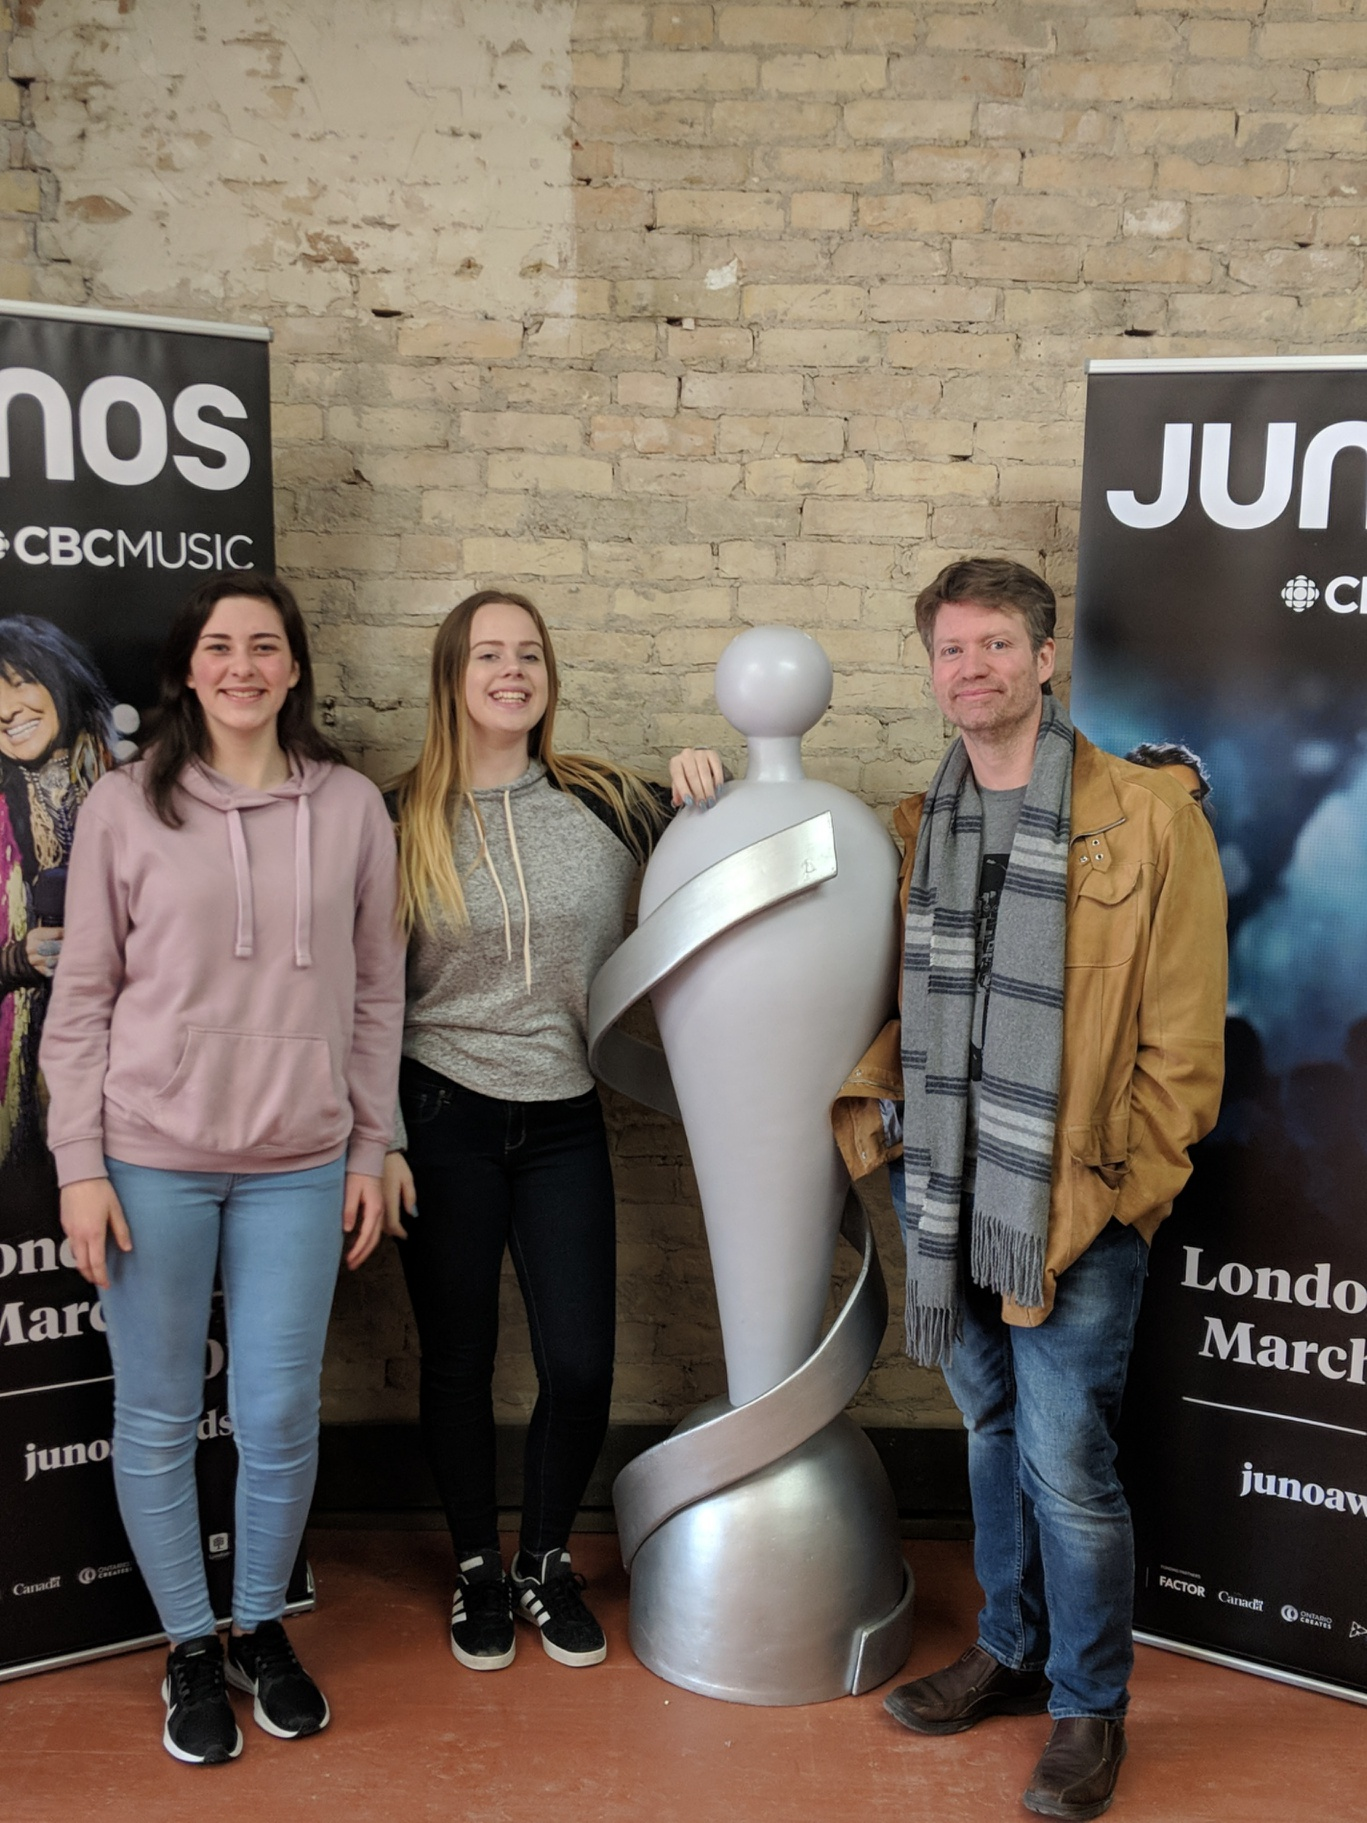 Jenn & Maddie stand in front of Budweiser Gardens in London, where the JUNO Awards will be held on Sunday, March 17th. Second photo: Emily, Jenn & Andrew gather around the life-size JUNO statue that has been added inside JUNO House at 658 Dundas Street in Old East Village in London.